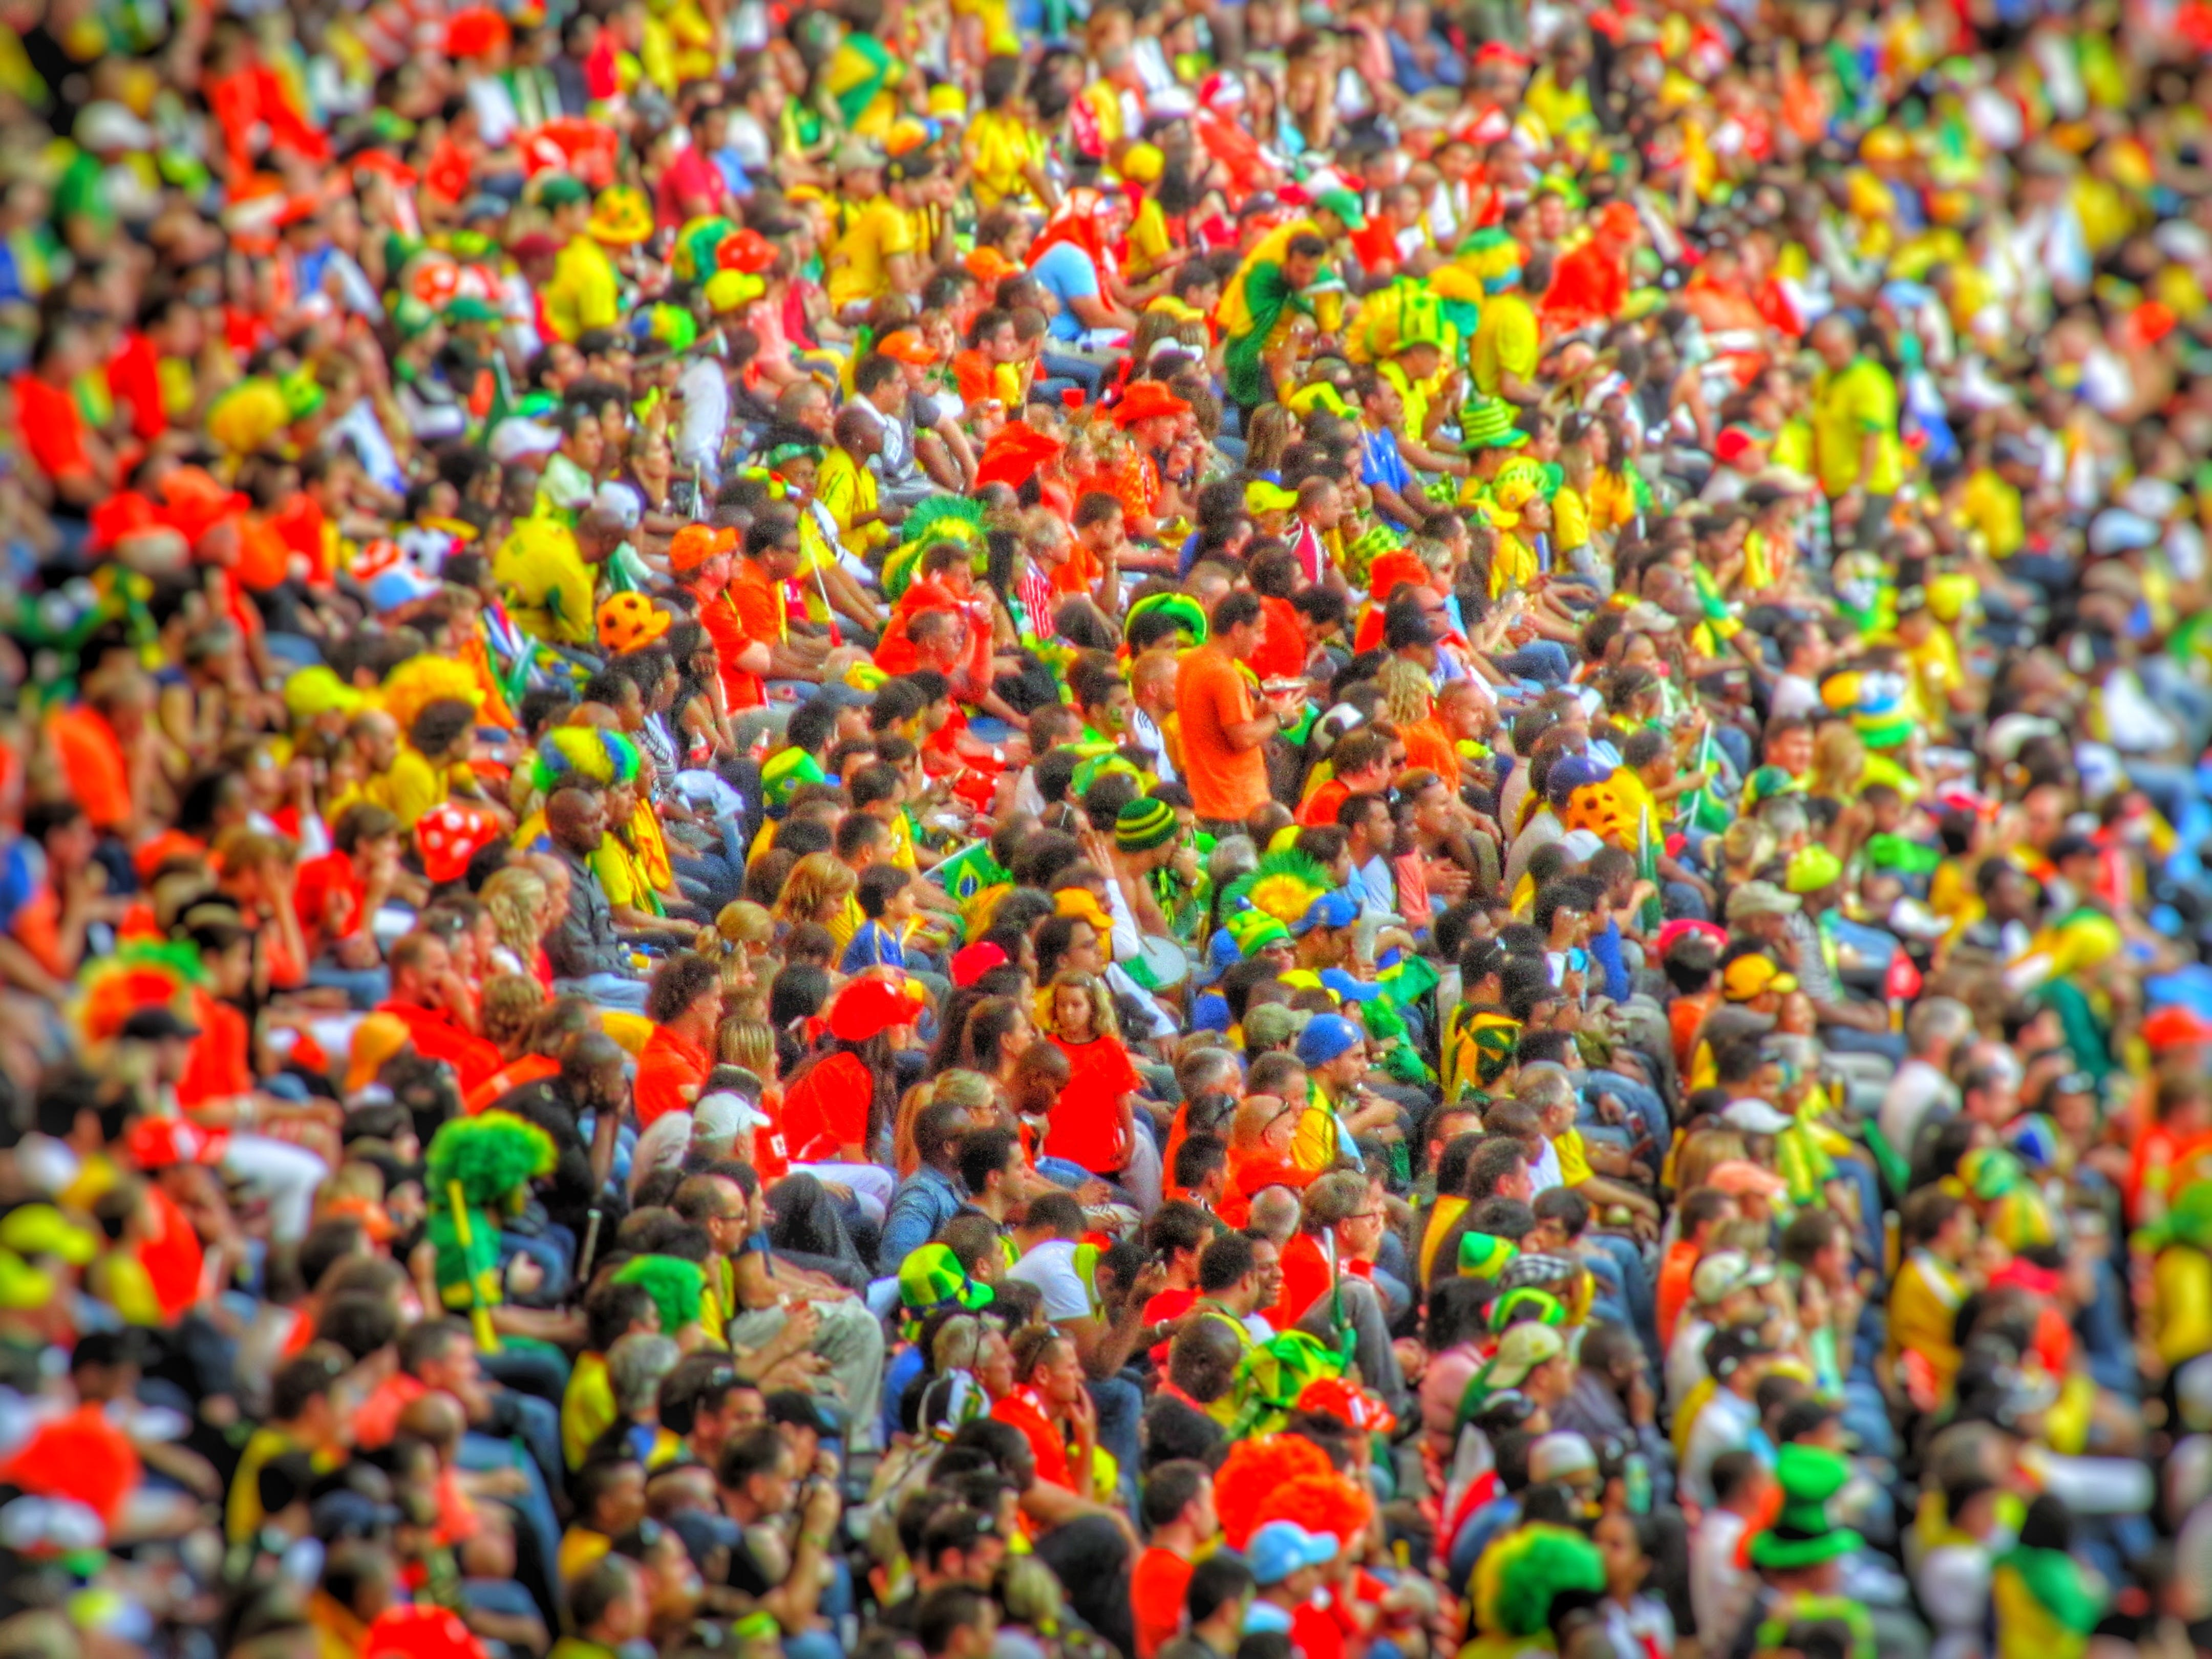 Free stock photo of crowd, football, football crowd, soccer